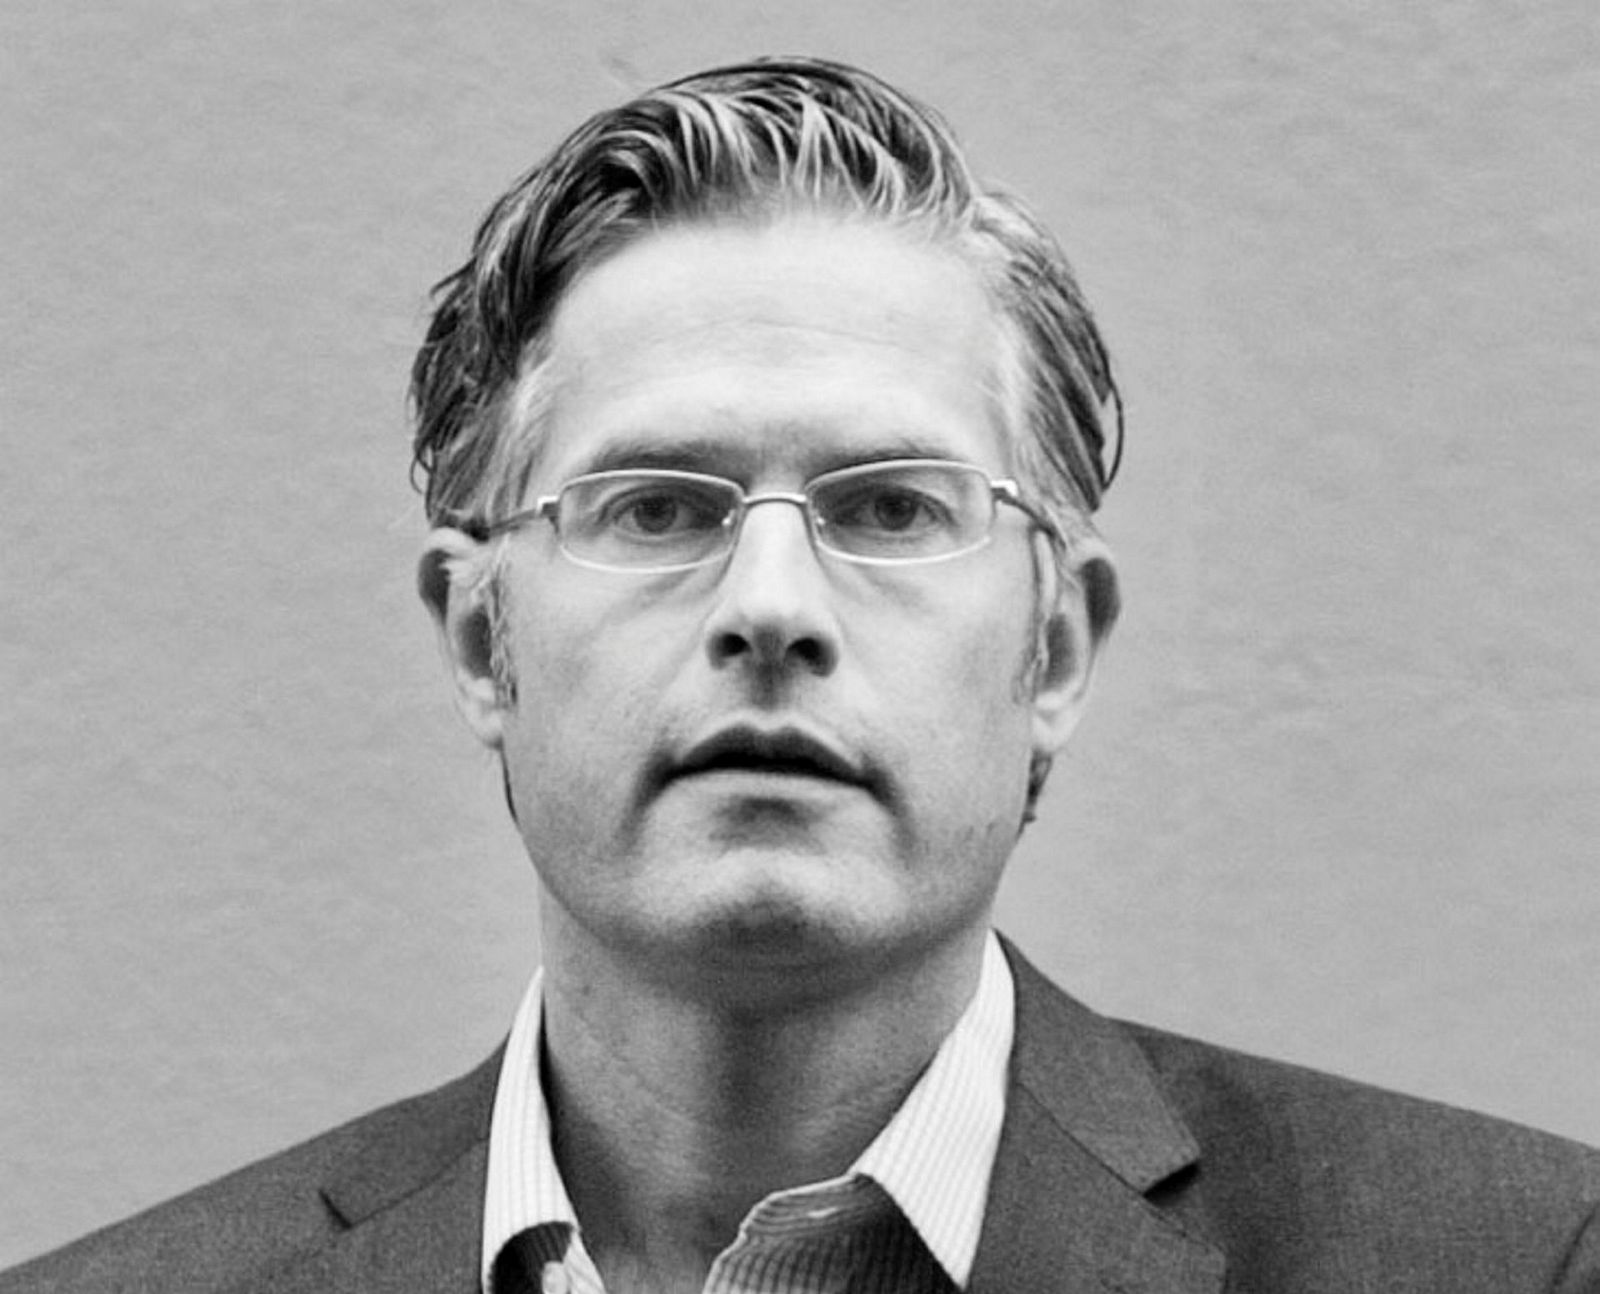 Thorvald Nyquist, Deloitte